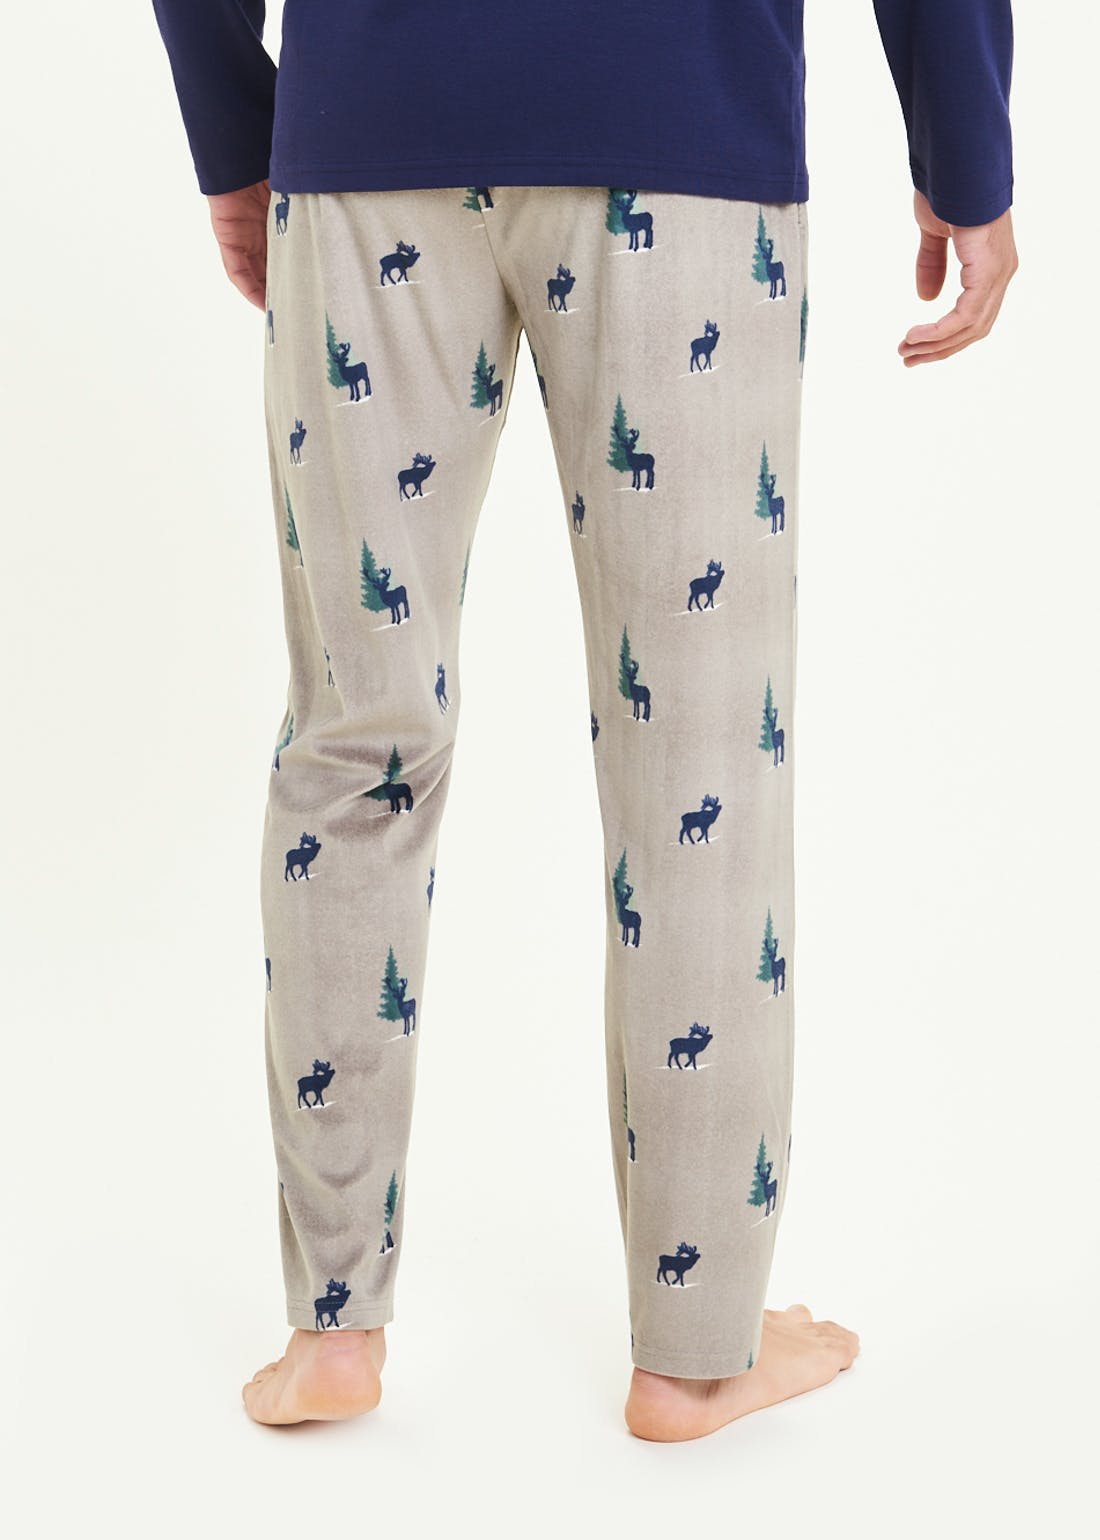 Silky Fleece Reindeer Print Pyjama Bottoms